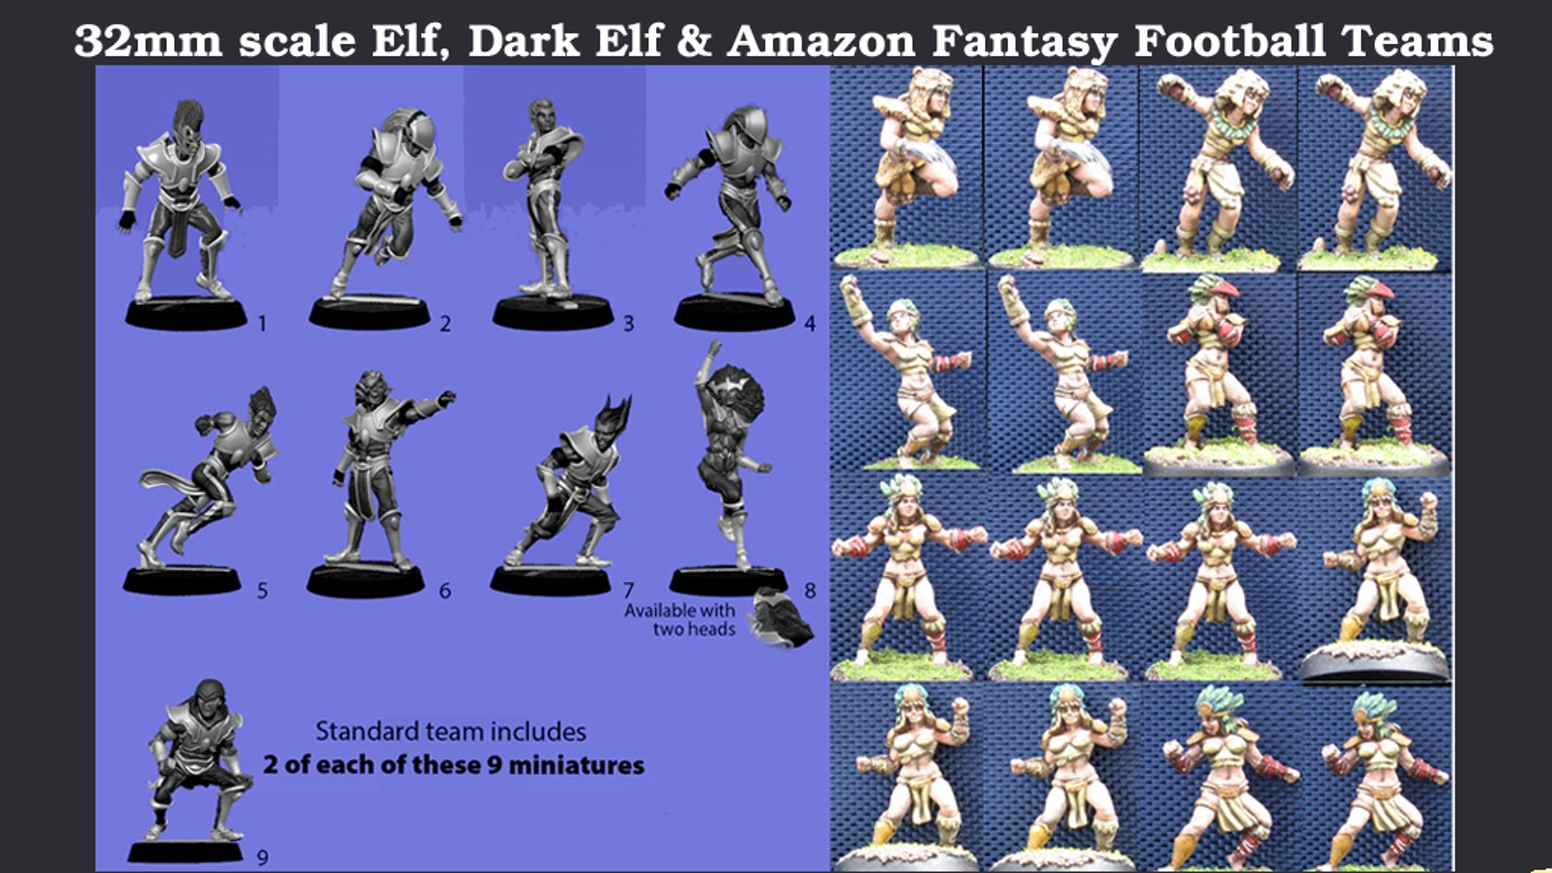 32mm scale Fantasy Football Amazons, Elves & Dark Elves by Impact